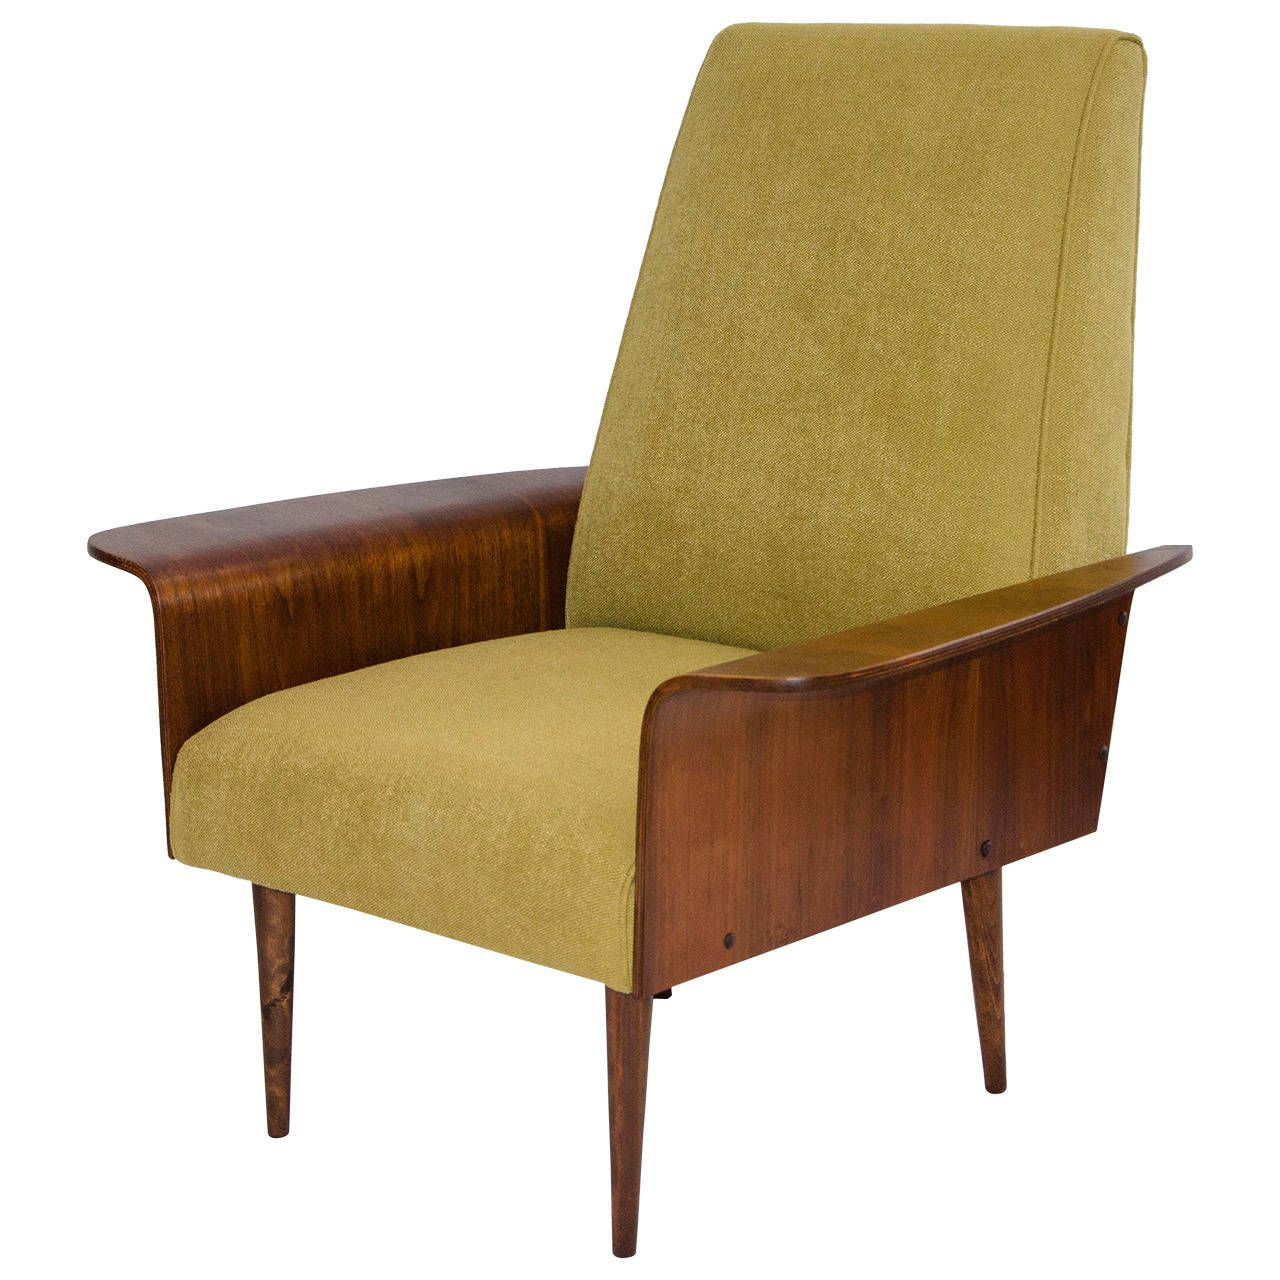 Walnut Bent Ply Lounge Chair in the Style of George Mulhauser | From a unique collection of antique and modern lounge chairs at https://www.1stdibs.com/furniture/seating/lounge-chairs/